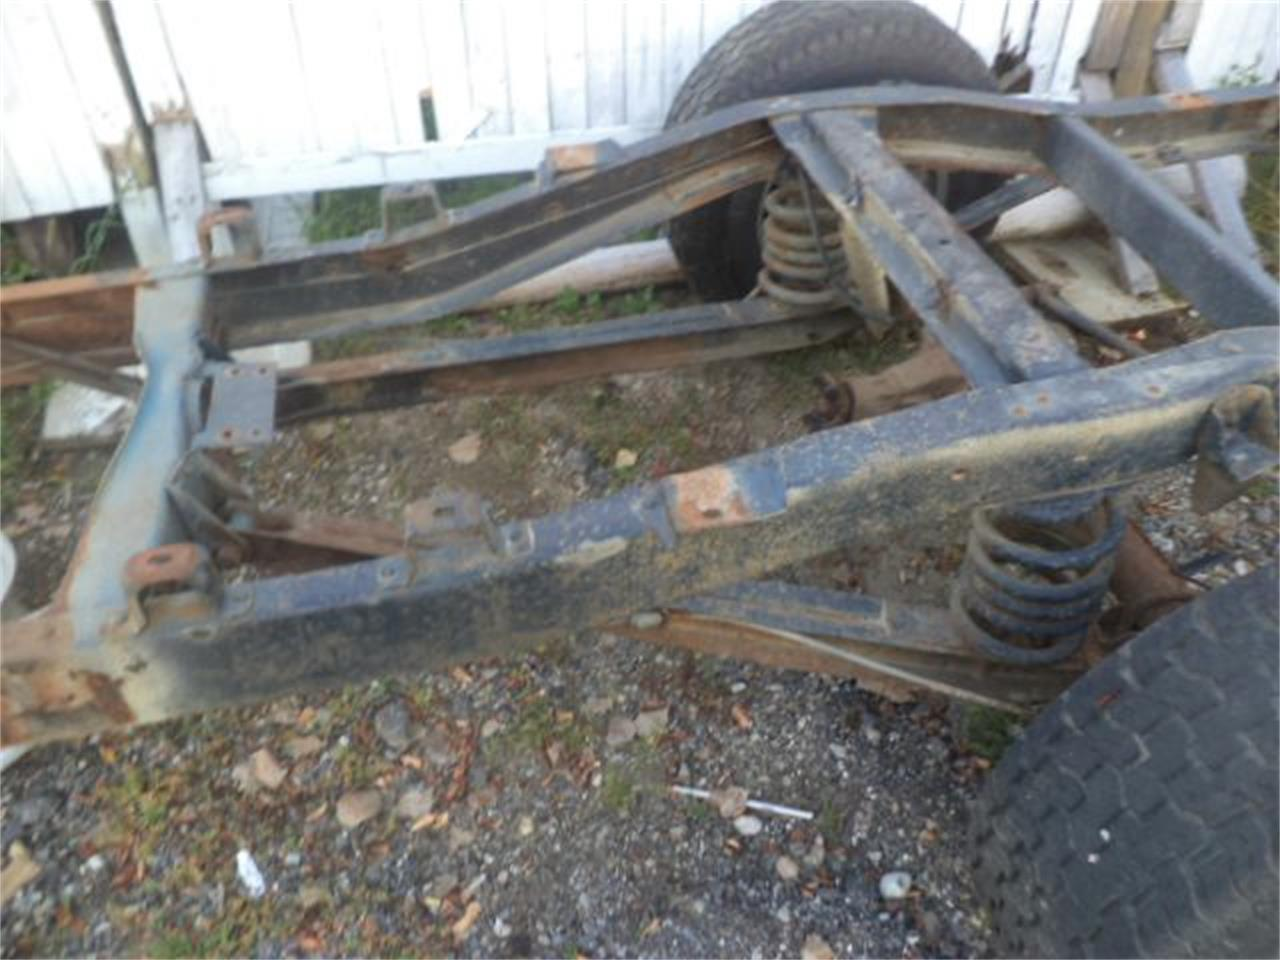 Large Picture of 1969 Chevrolet 3/4 Ton Pickup - $595.00 - CD9M